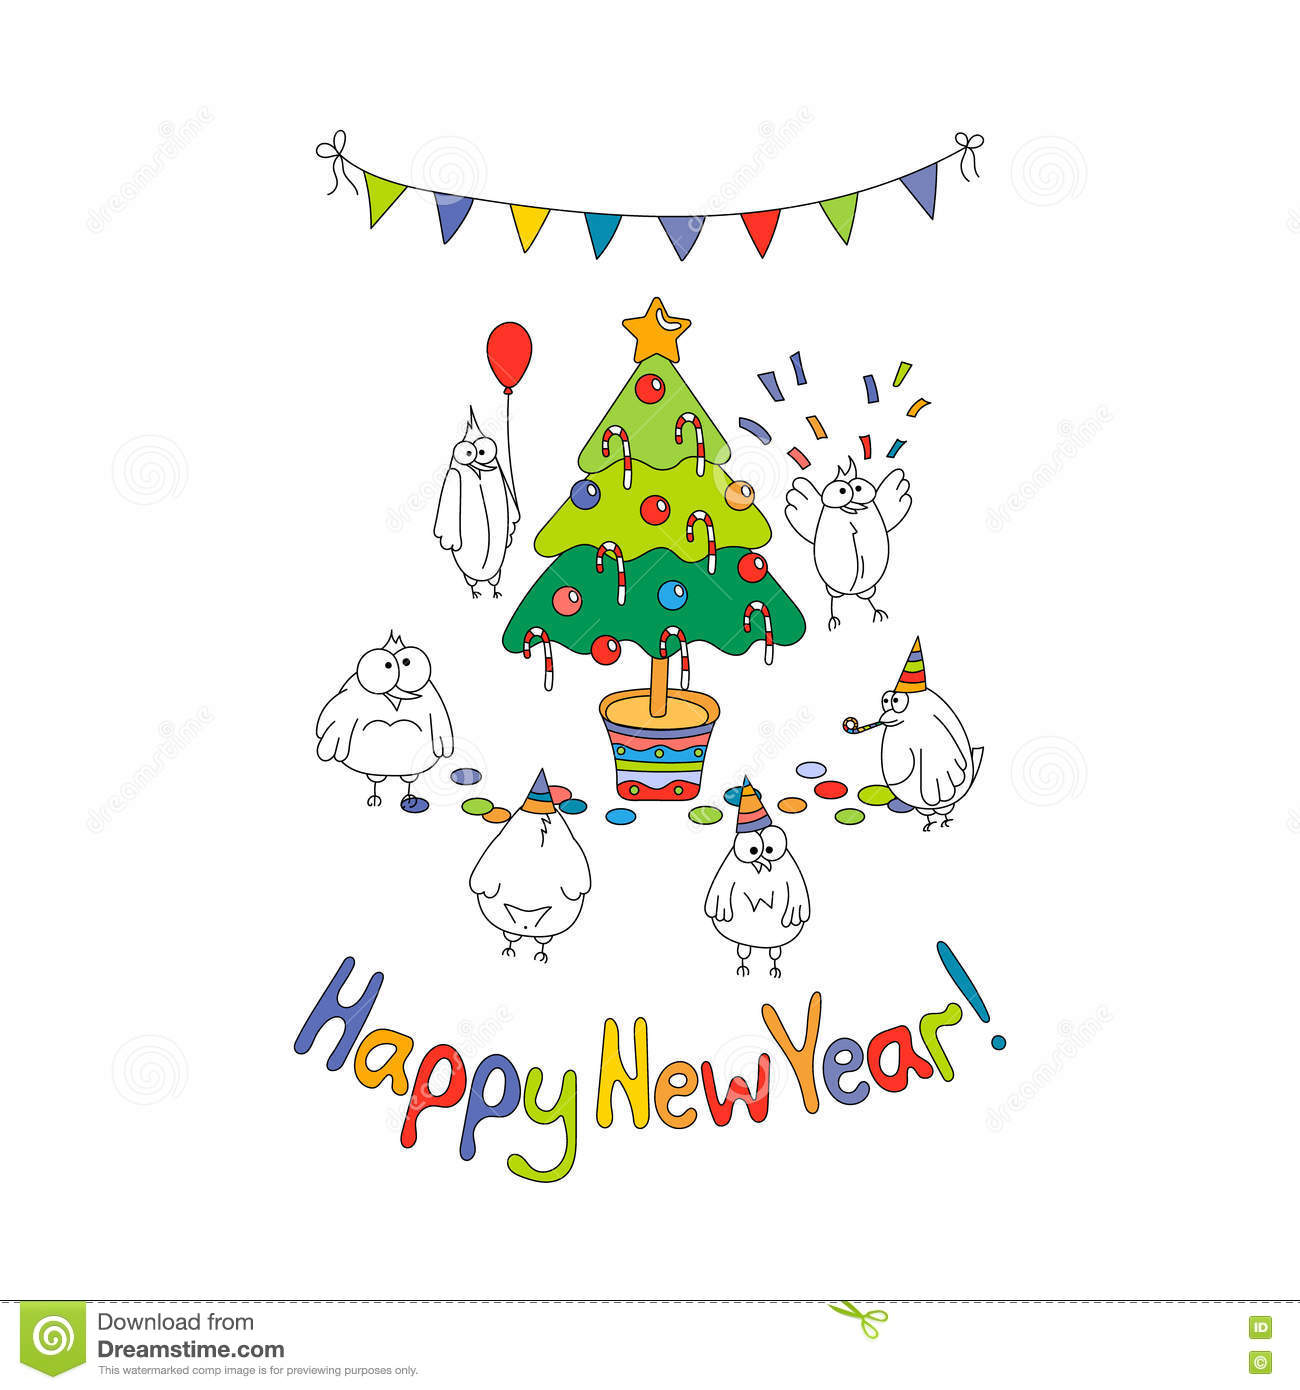 Happy new year greeting card with cartoon funny birds stock vector download happy new year greeting card with cartoon funny birds stock vector illustration of m4hsunfo